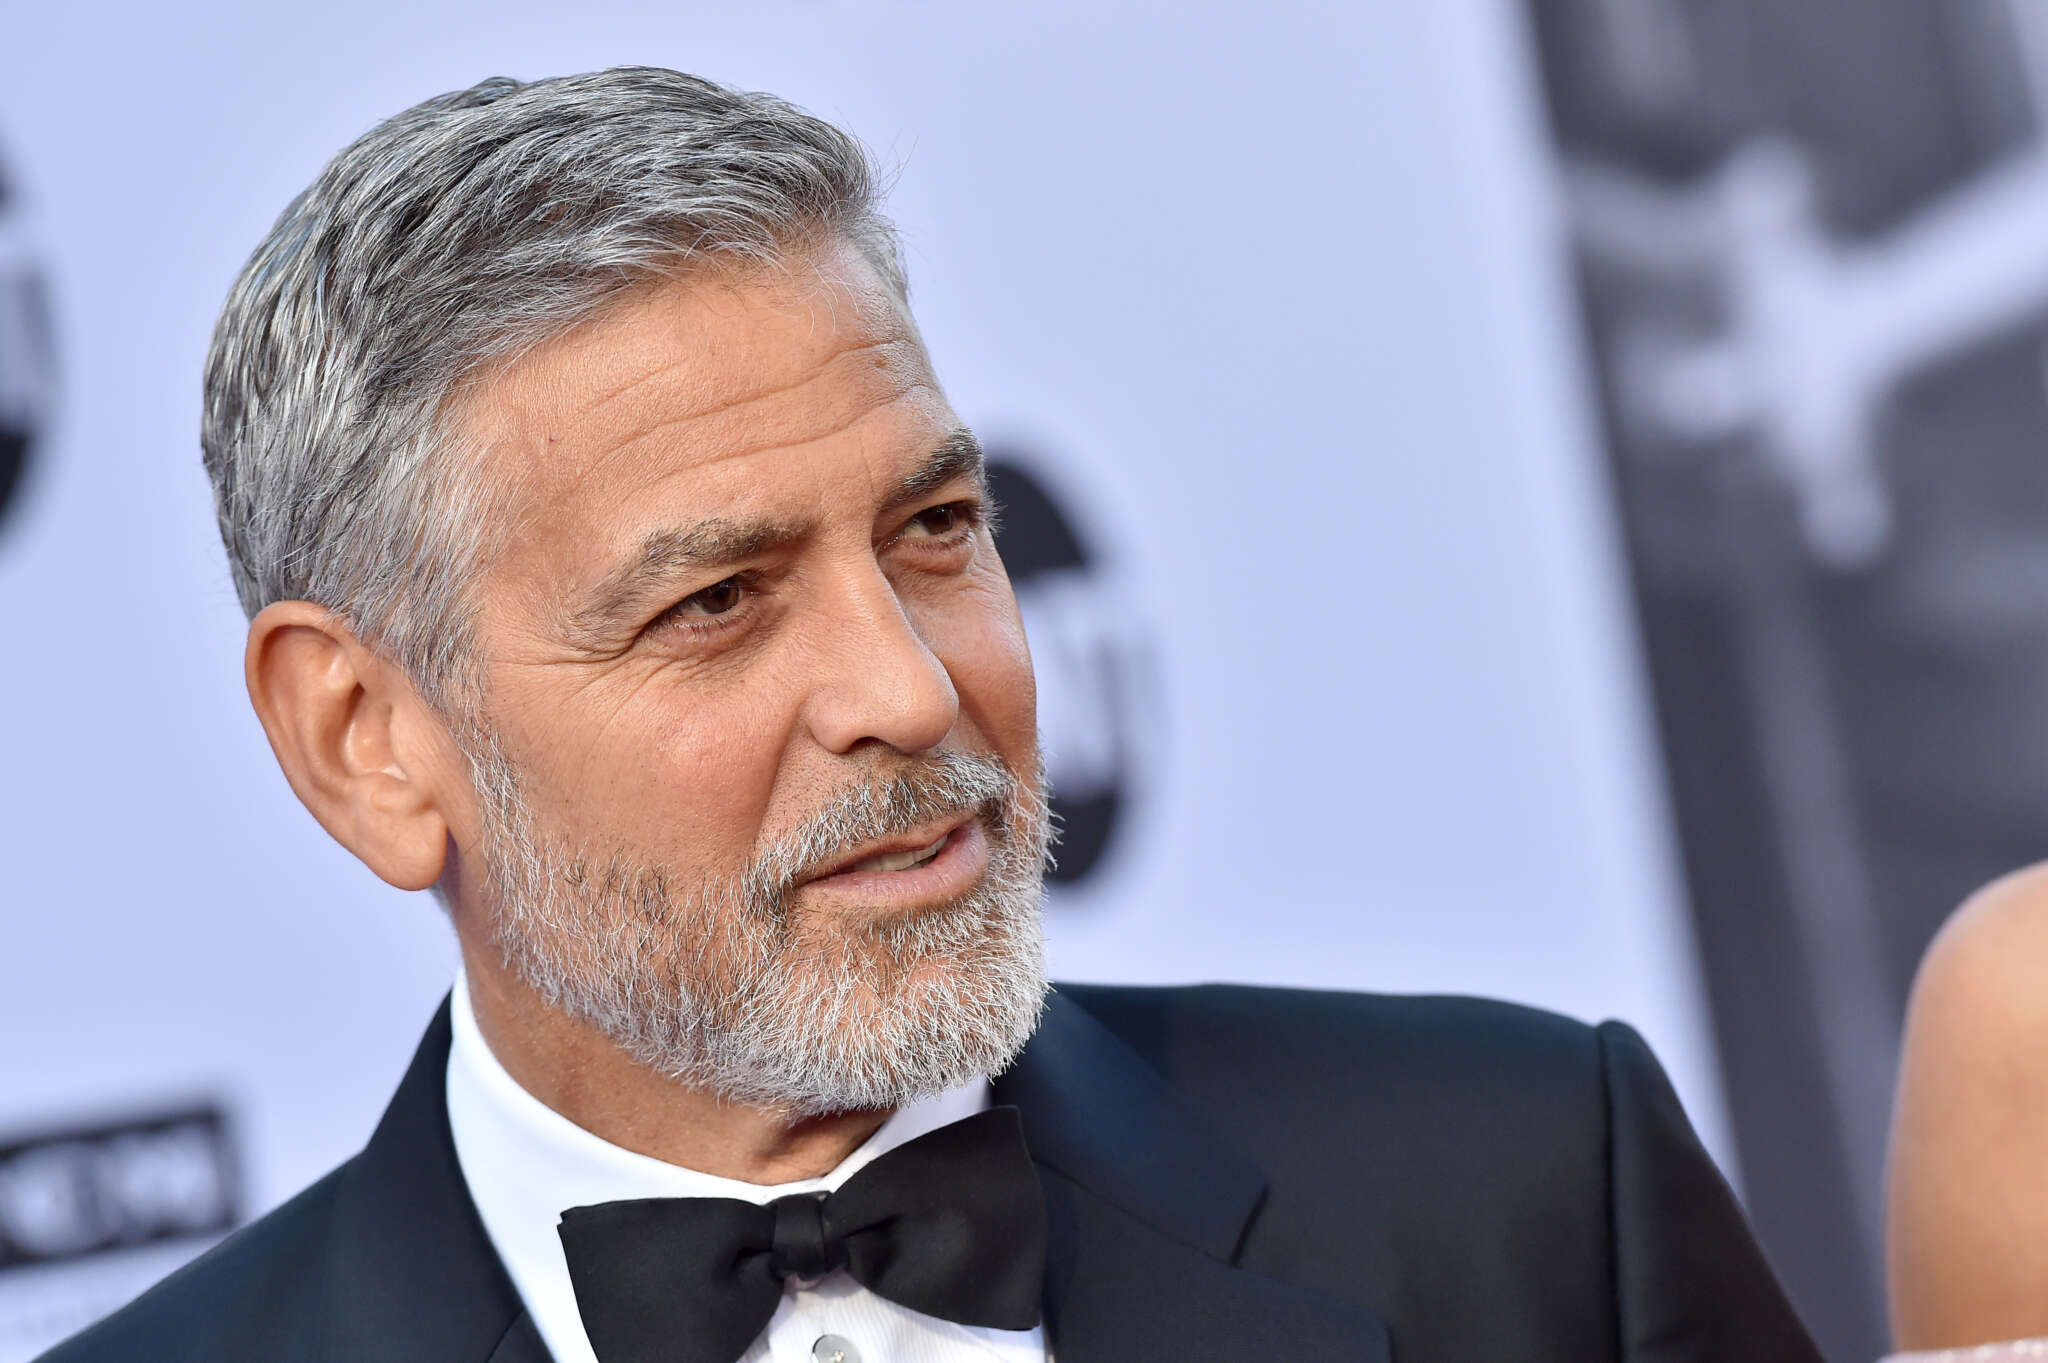 """george-clooney-says-that-his-new-hobbies-are-cleaning-after-his-twin-slobs-as-well-as-doing-laundry-and-dishes"""